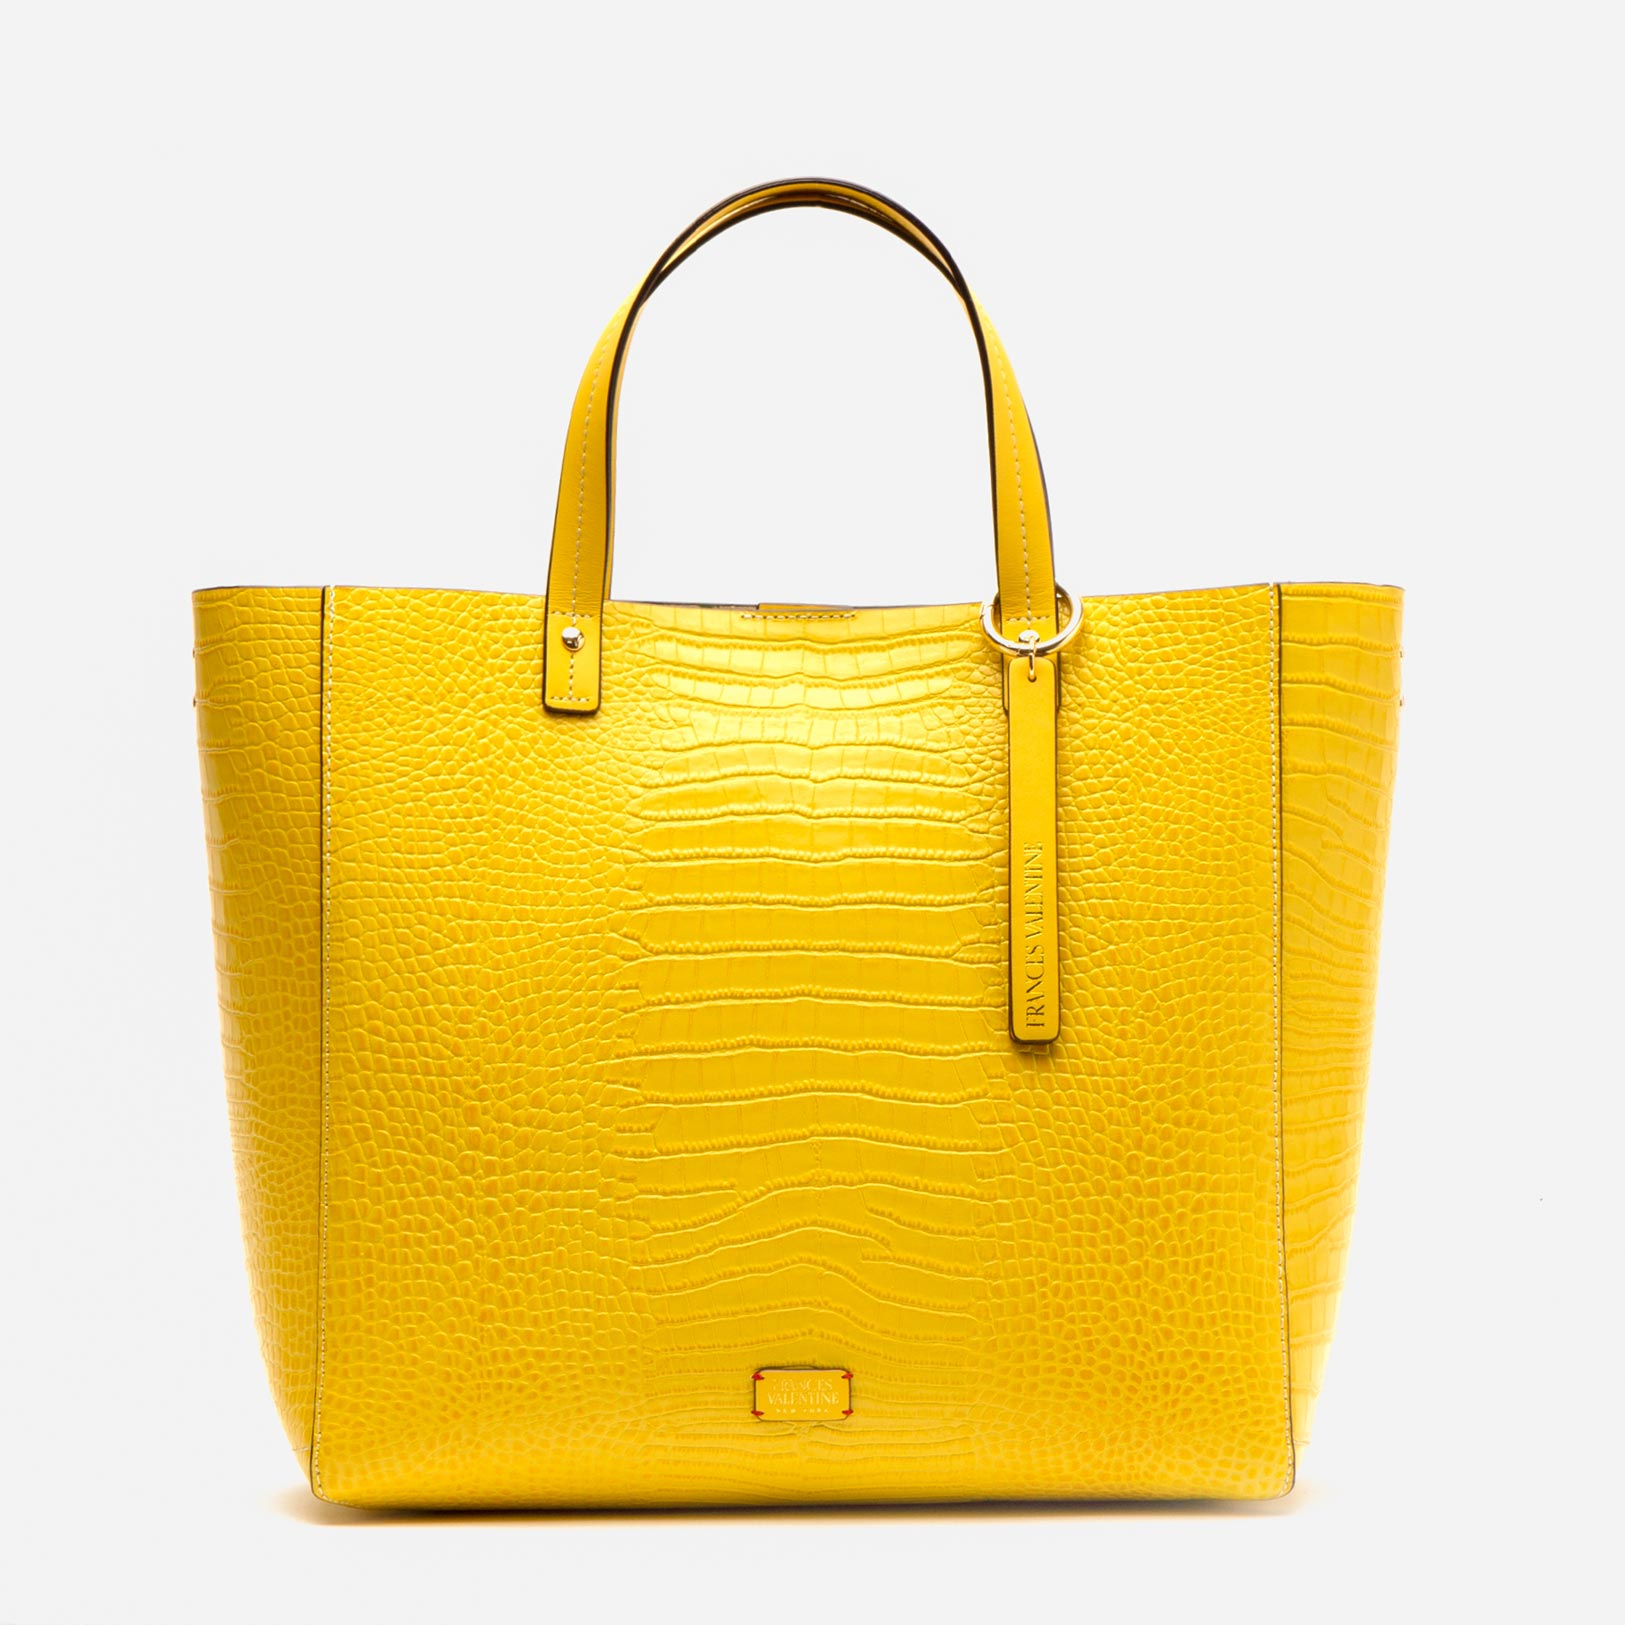 Margaret Tote Croc Embossed Leather Yellow - Frances Valentine